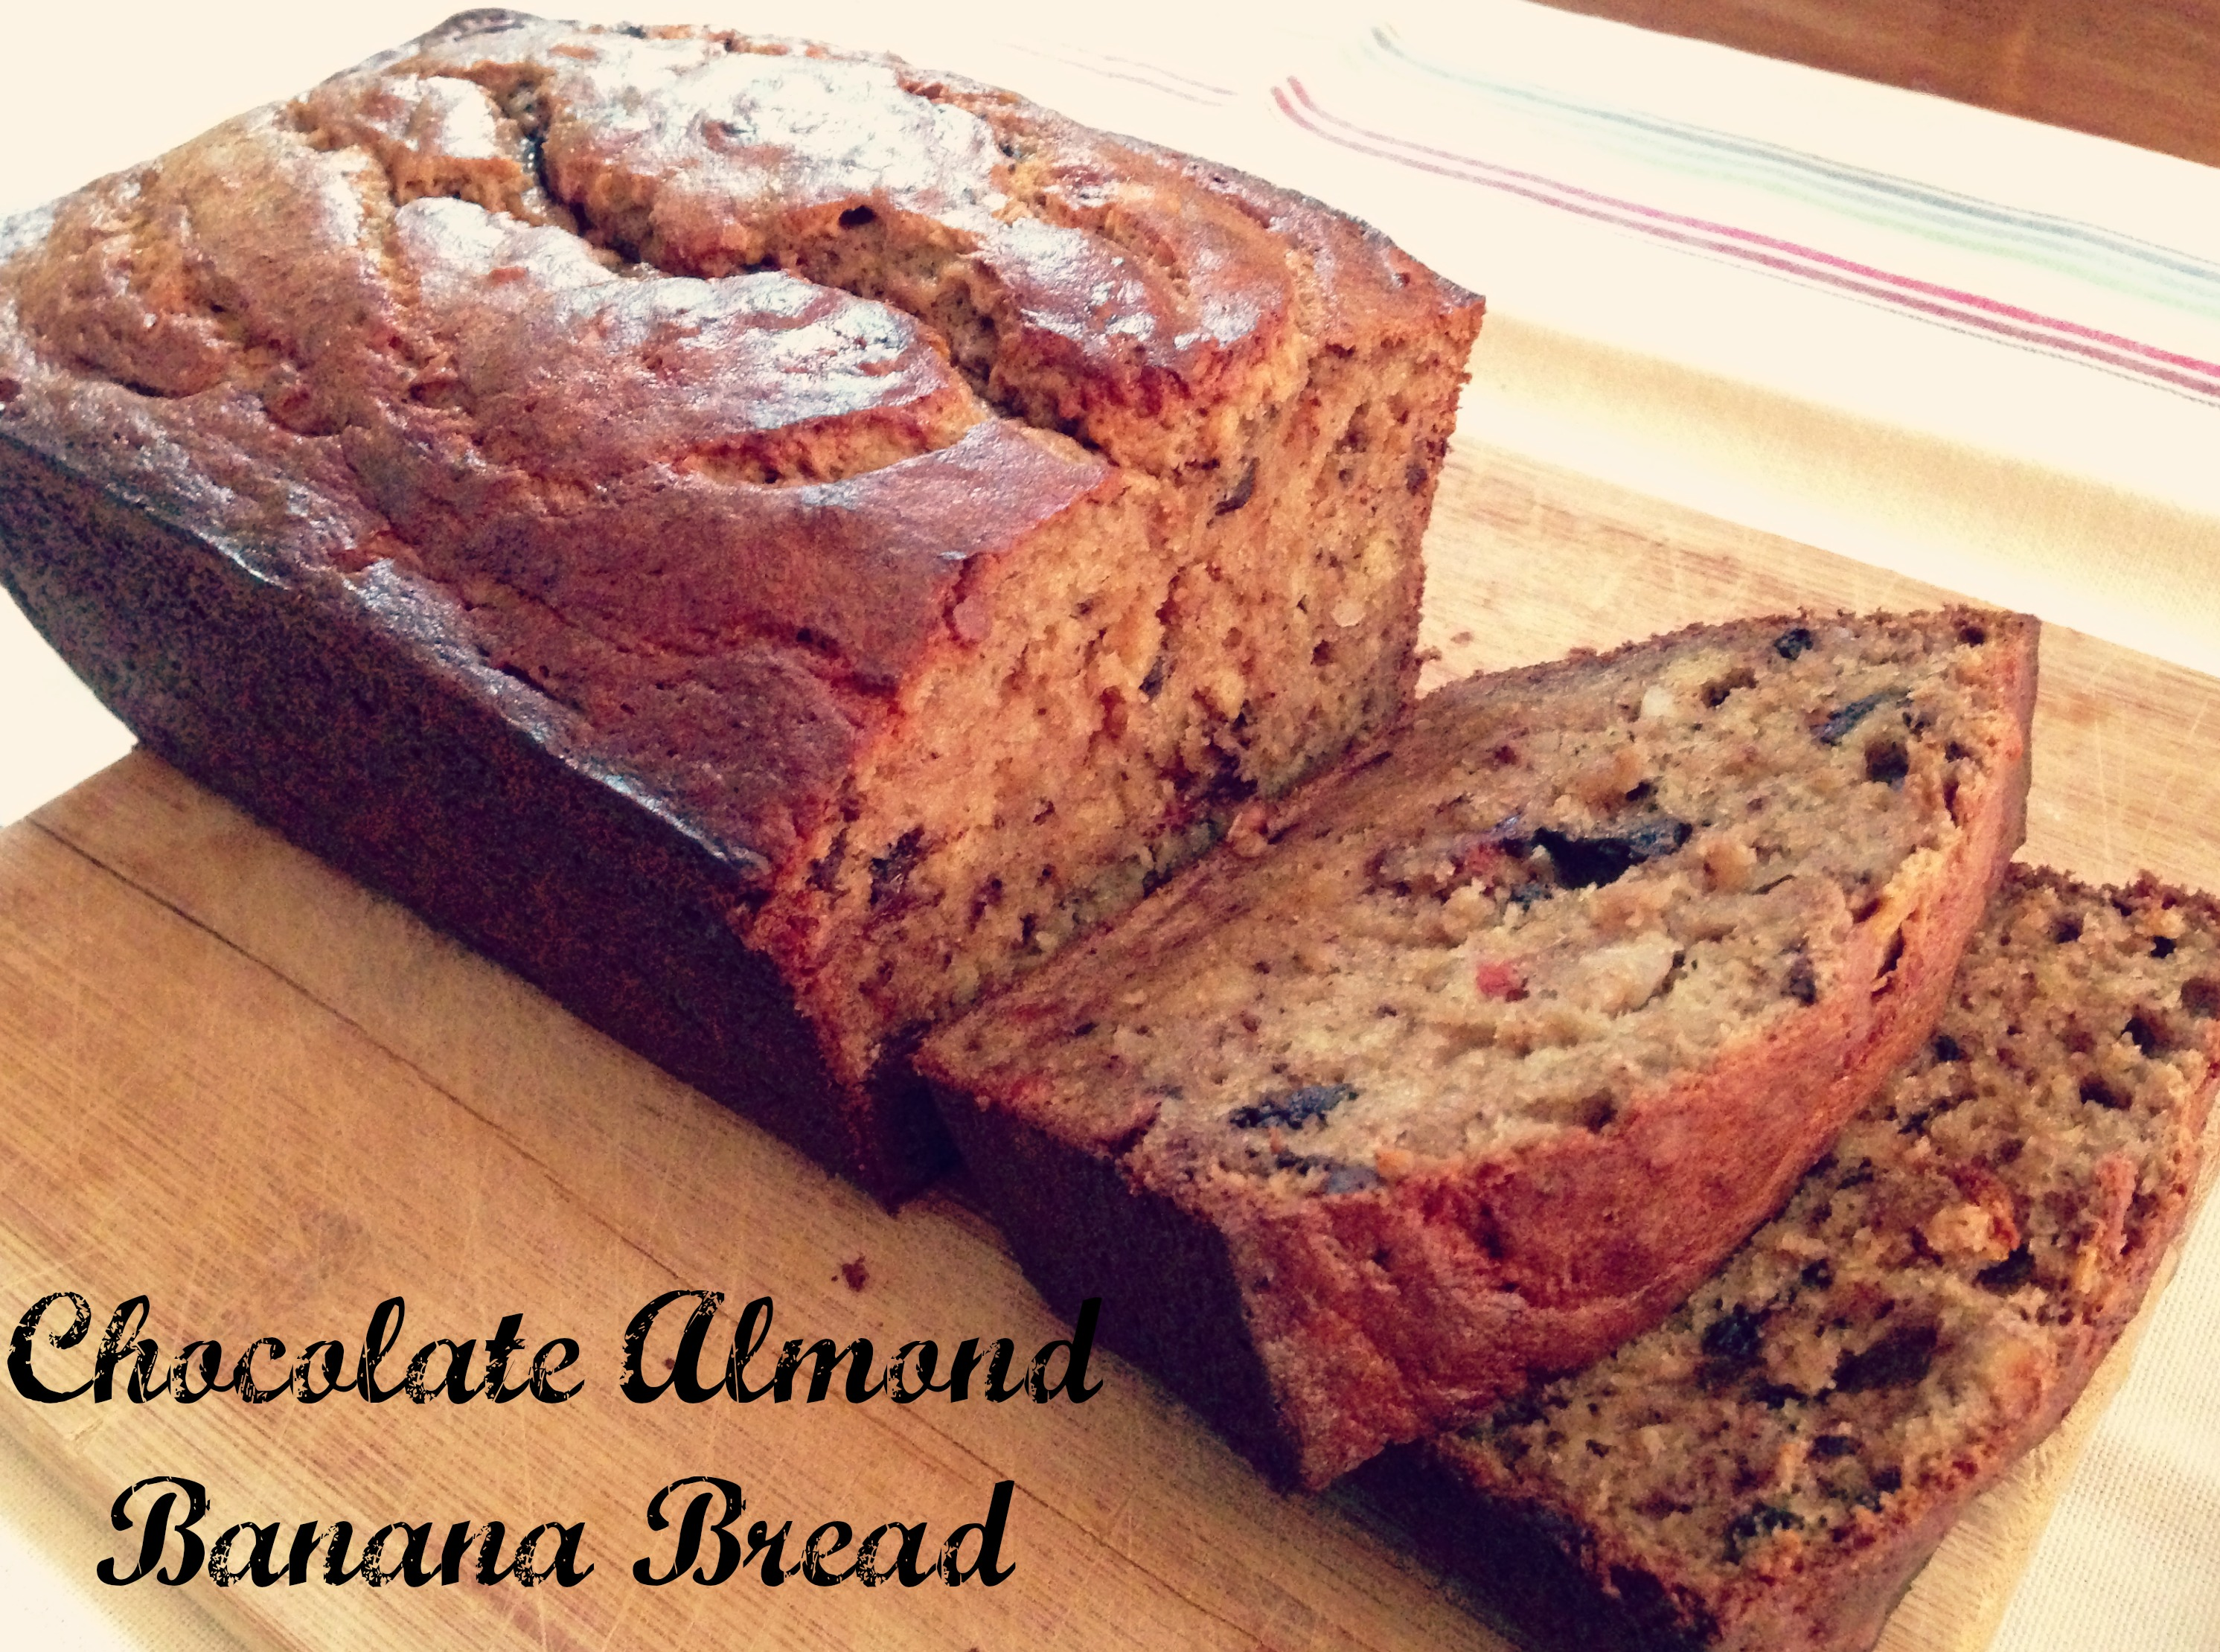 Choc Almond Banana Bread